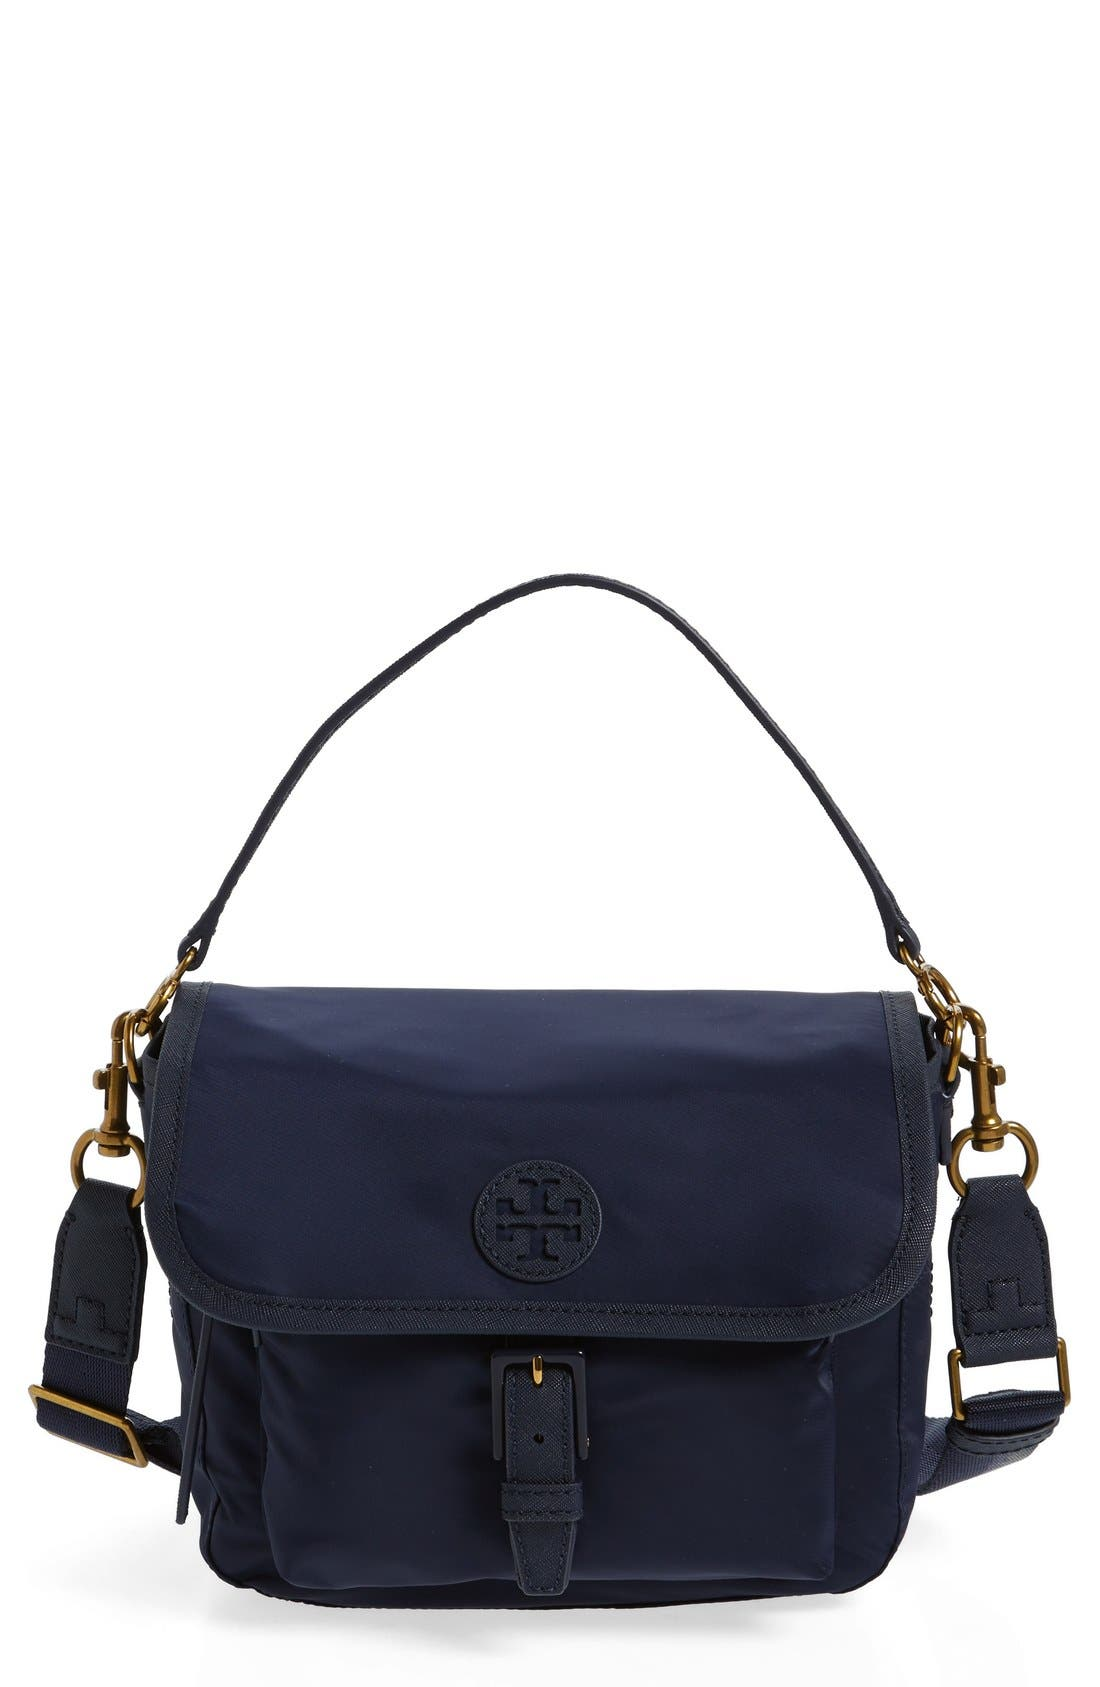 Alternate Image 1 Selected - Tory Burch Scout Nylon Crossbody Bag